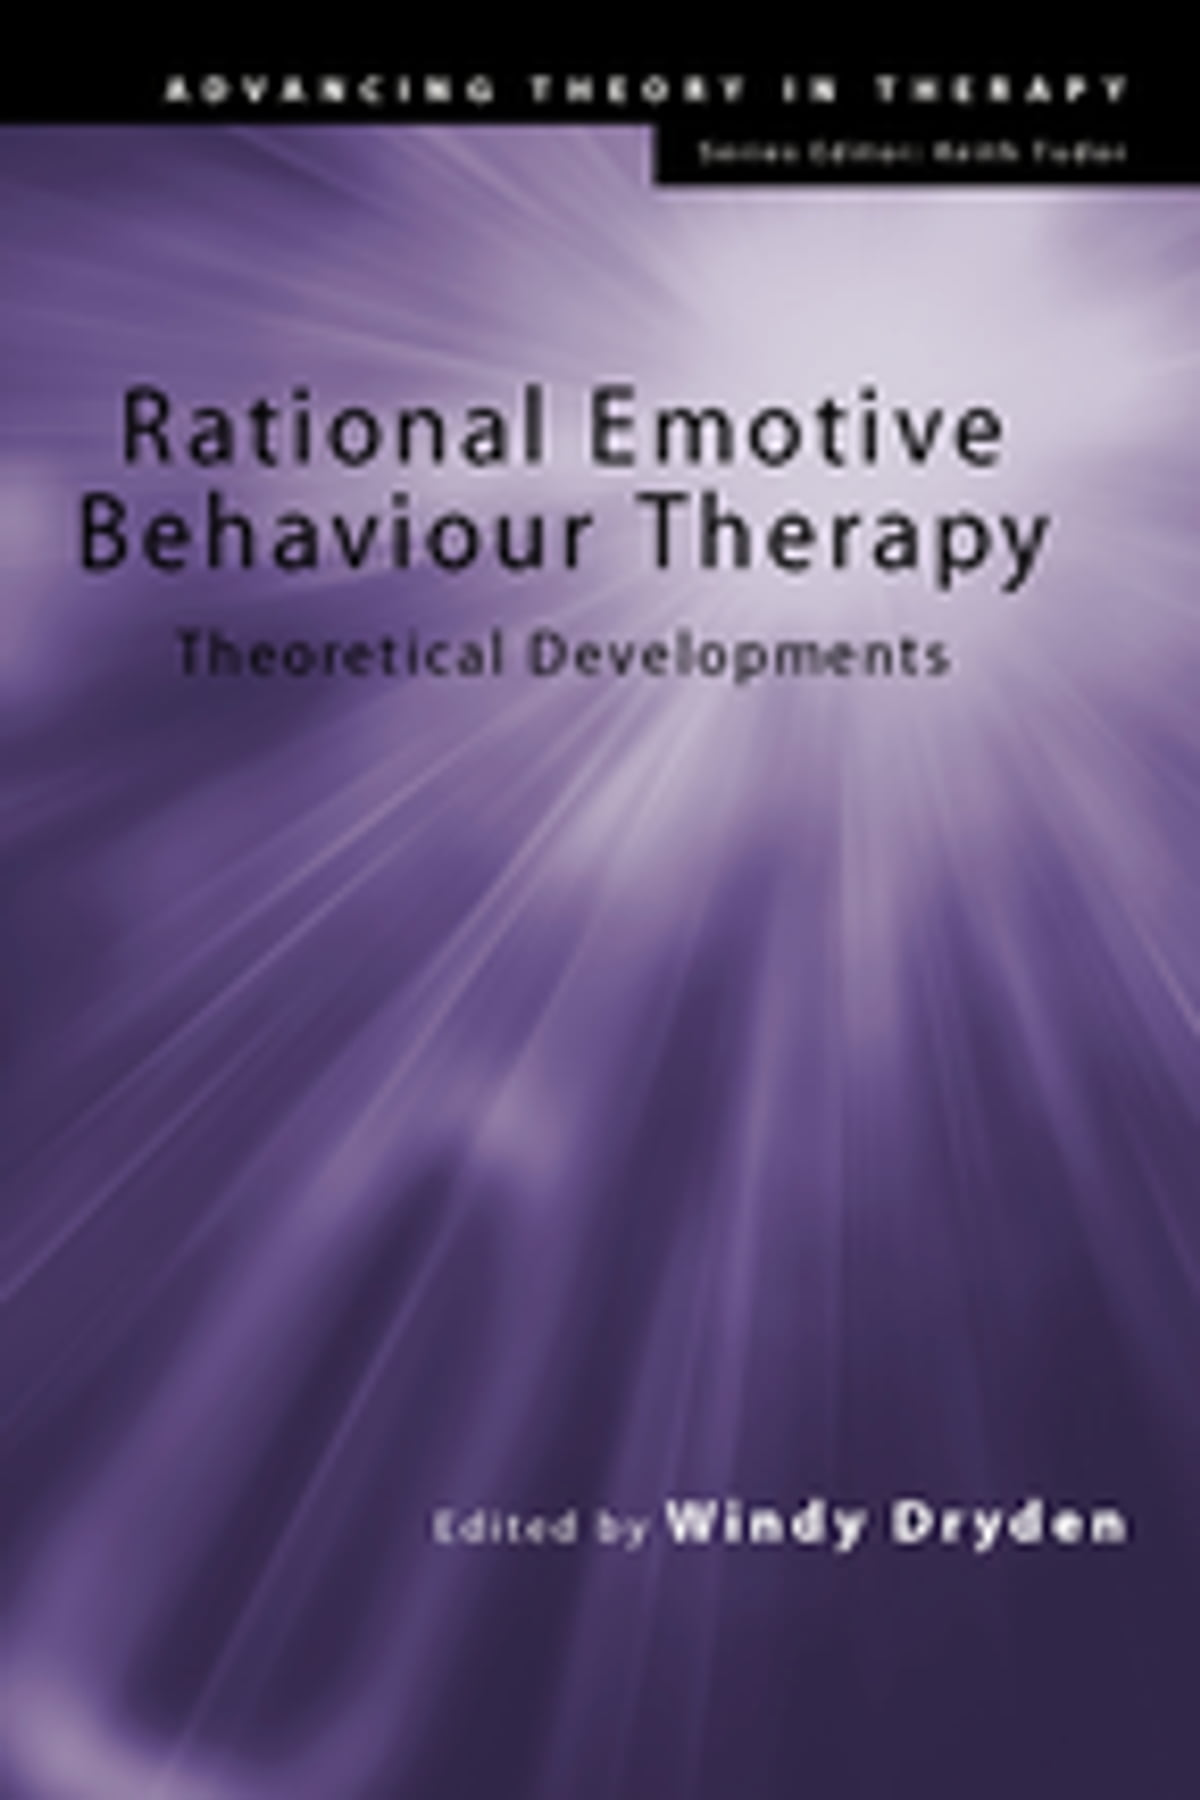 a description of the rational emotive behavior therapy summarized by understanding the a b c model f Previous literature suggests that rational emotive behavioral therapy (rebt), a derivation of cbt, is one of the most prominent theoretical approaches in asian counties, including china (hodges & oei, 2007.